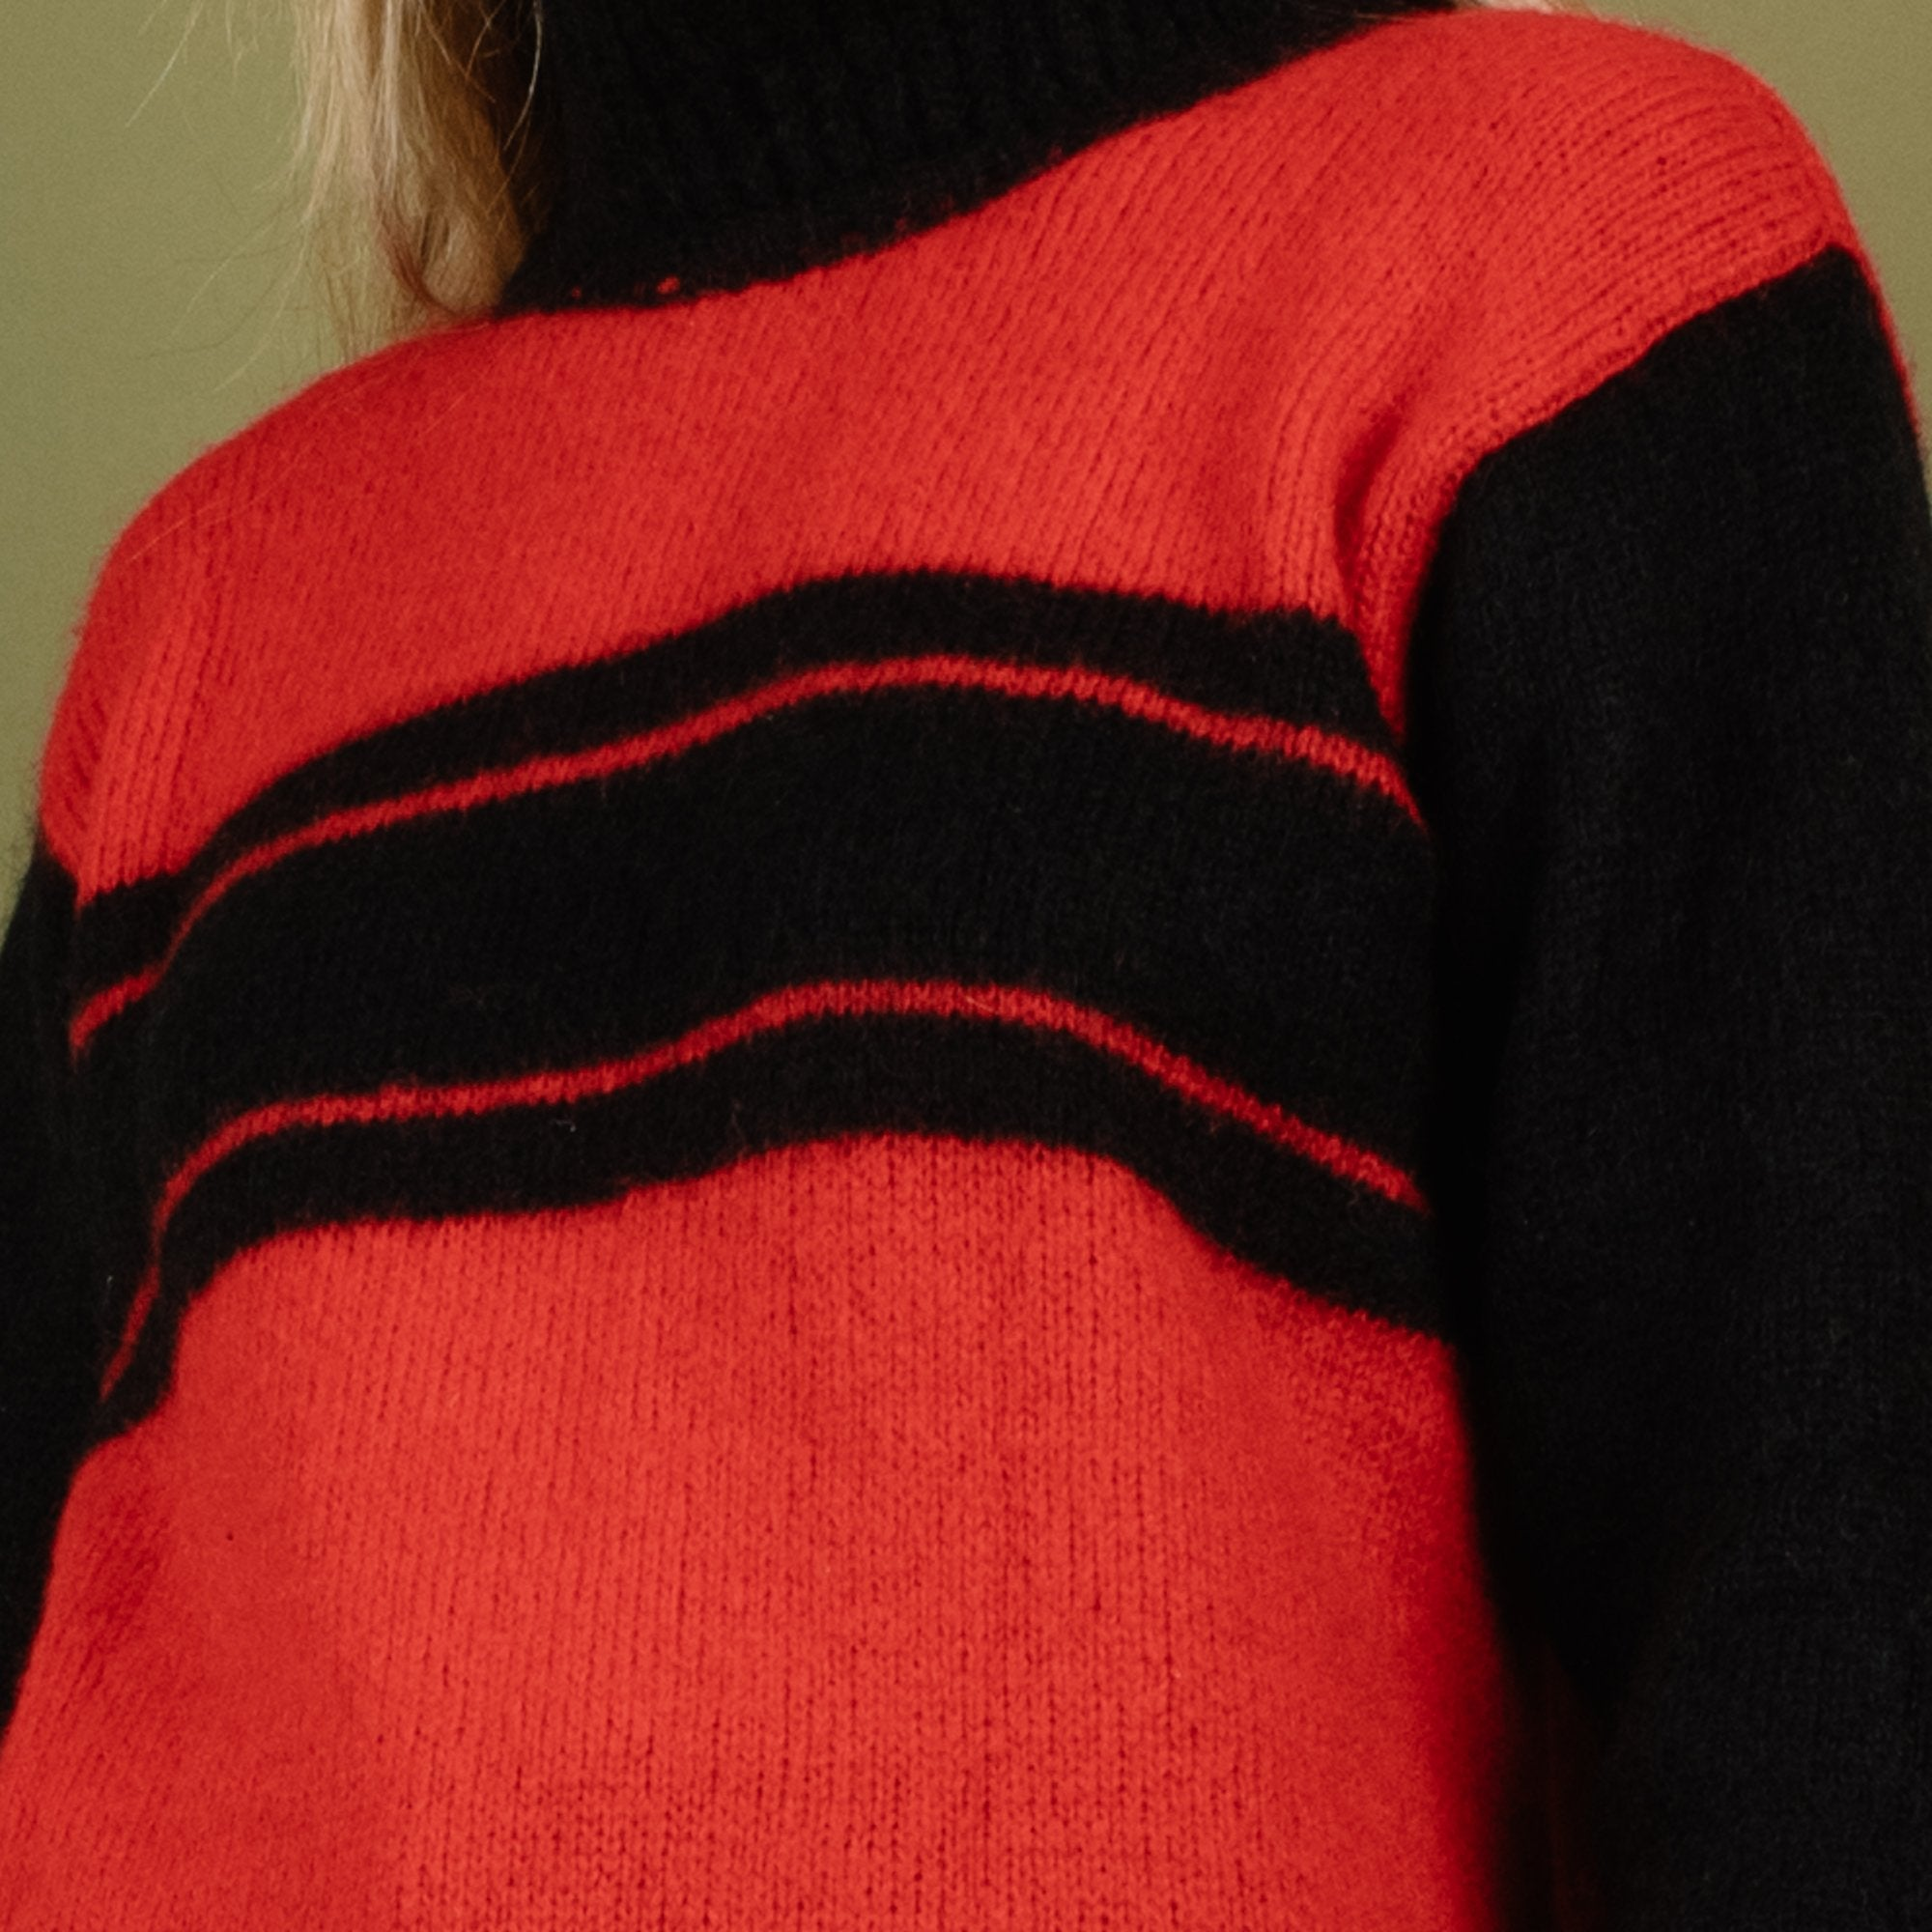 Vintage UNITED COLORS OF BENETTON Black + Red Striped Knit Sweater / S - Closed Caption